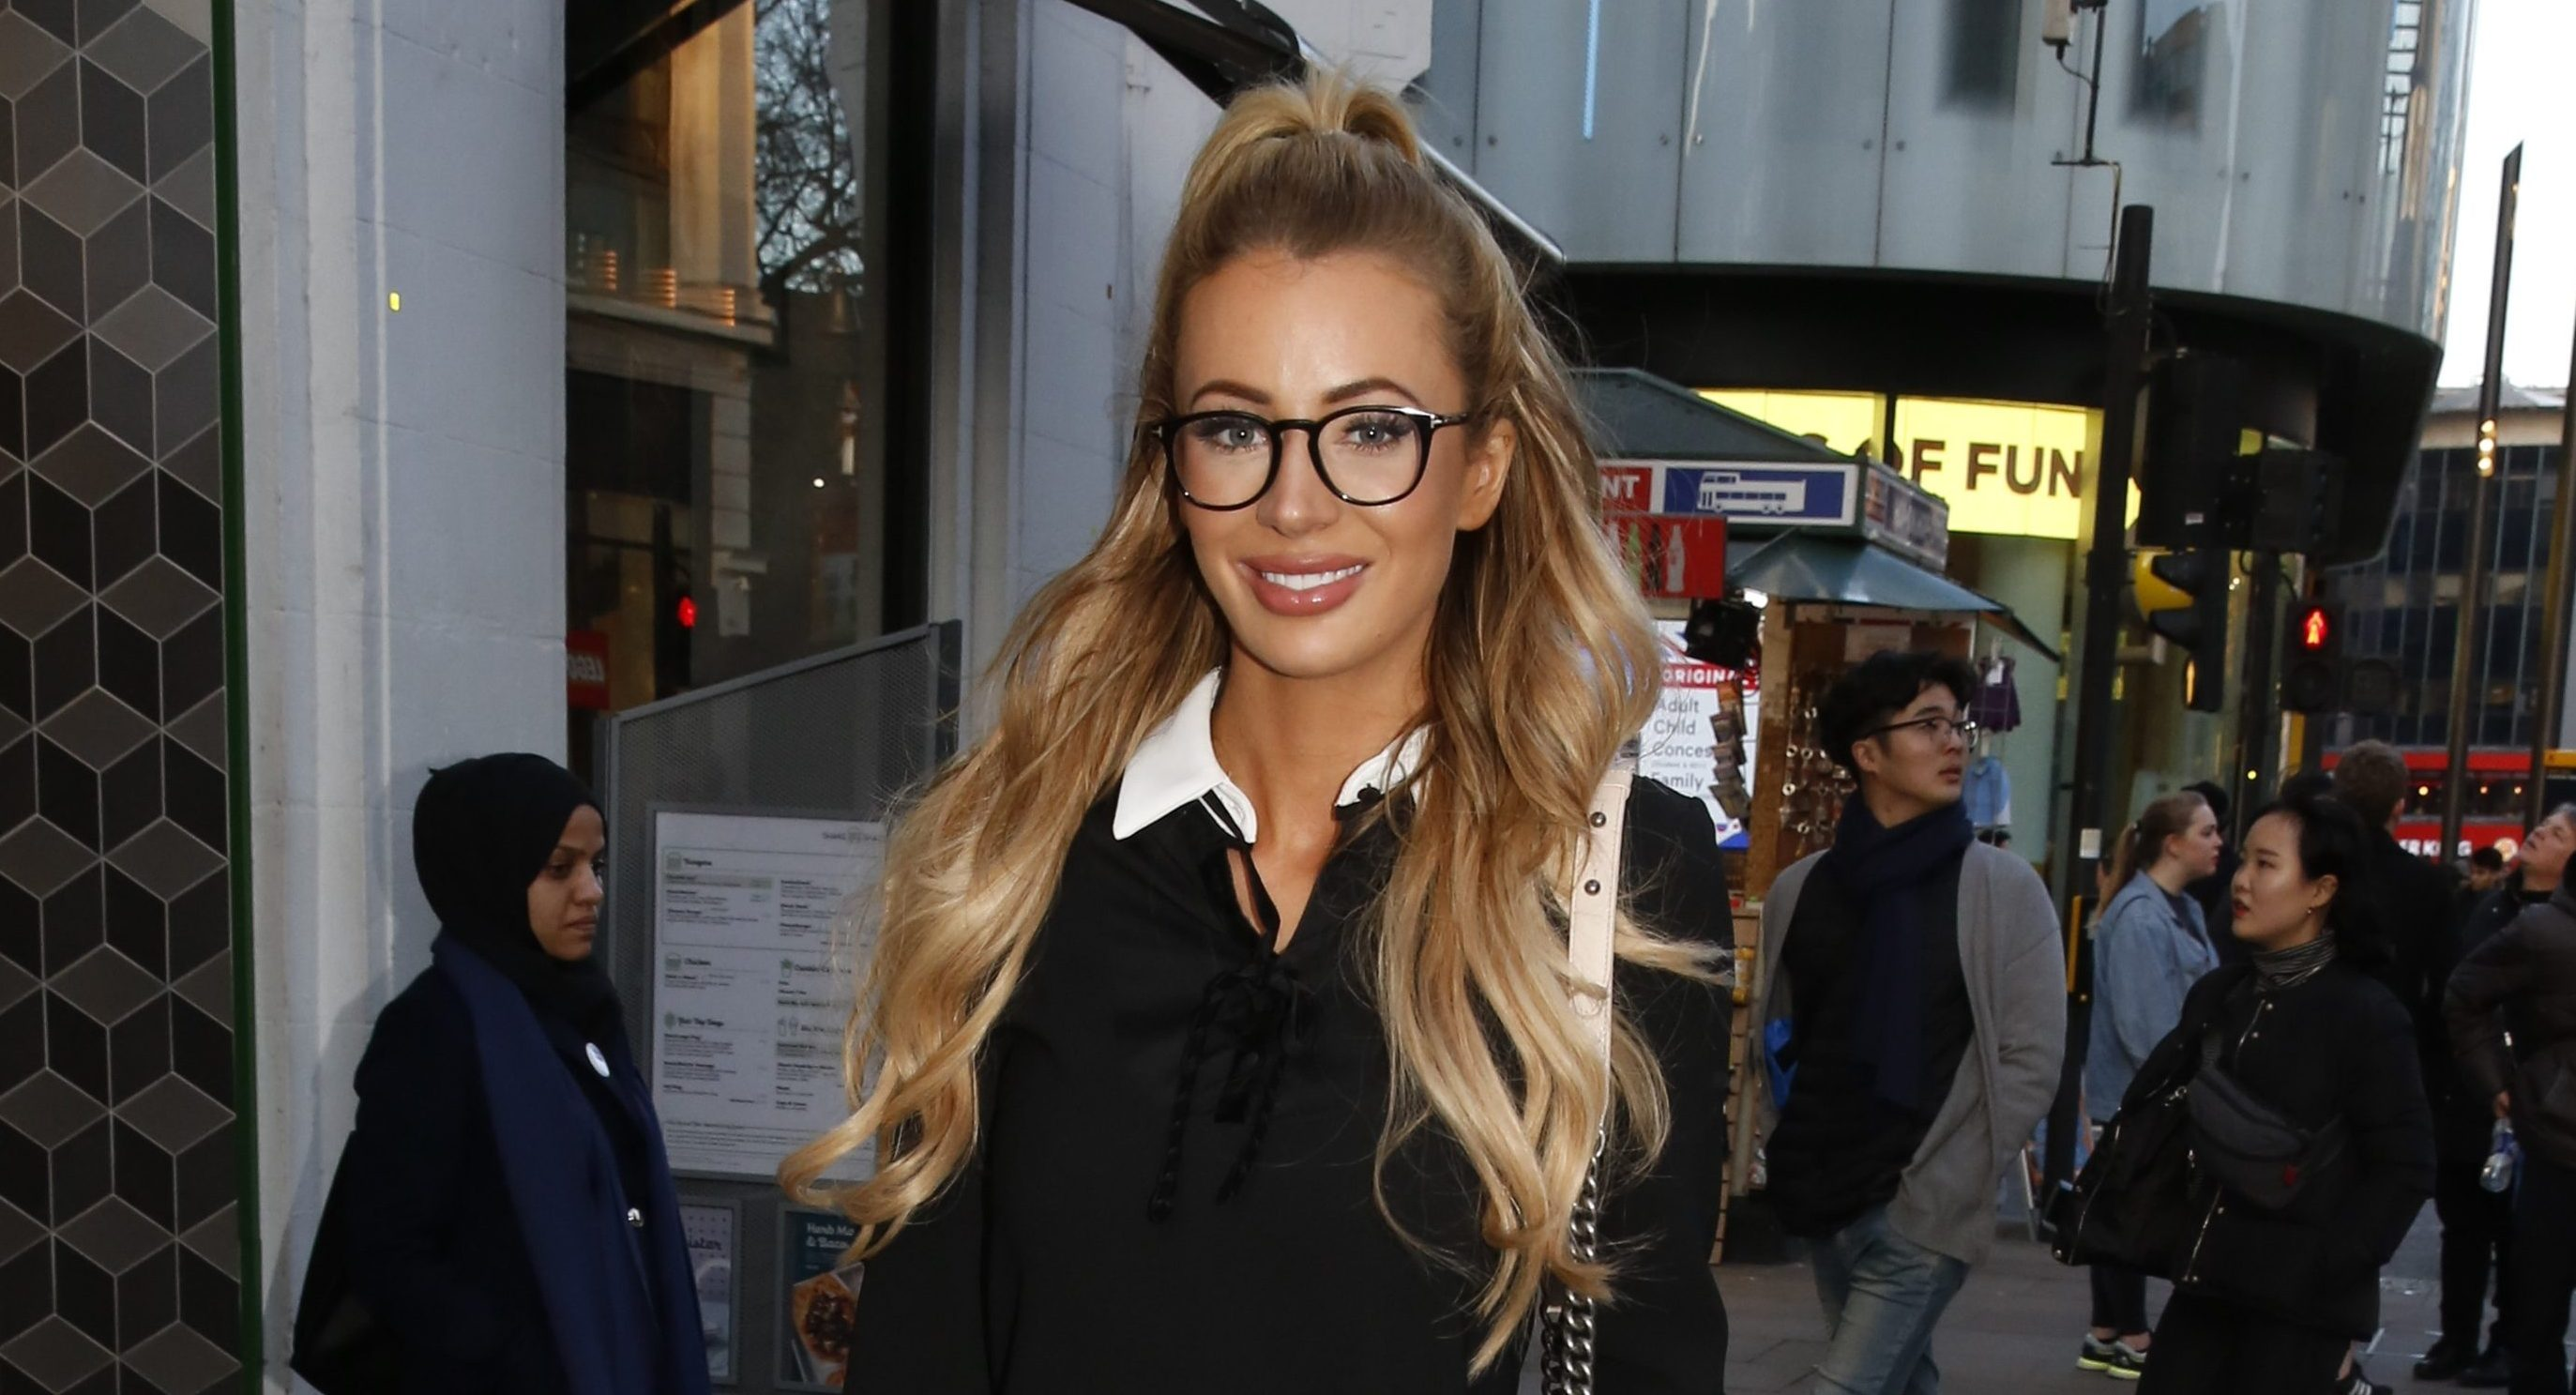 Former Love Islander Olivia Attwood is engaged